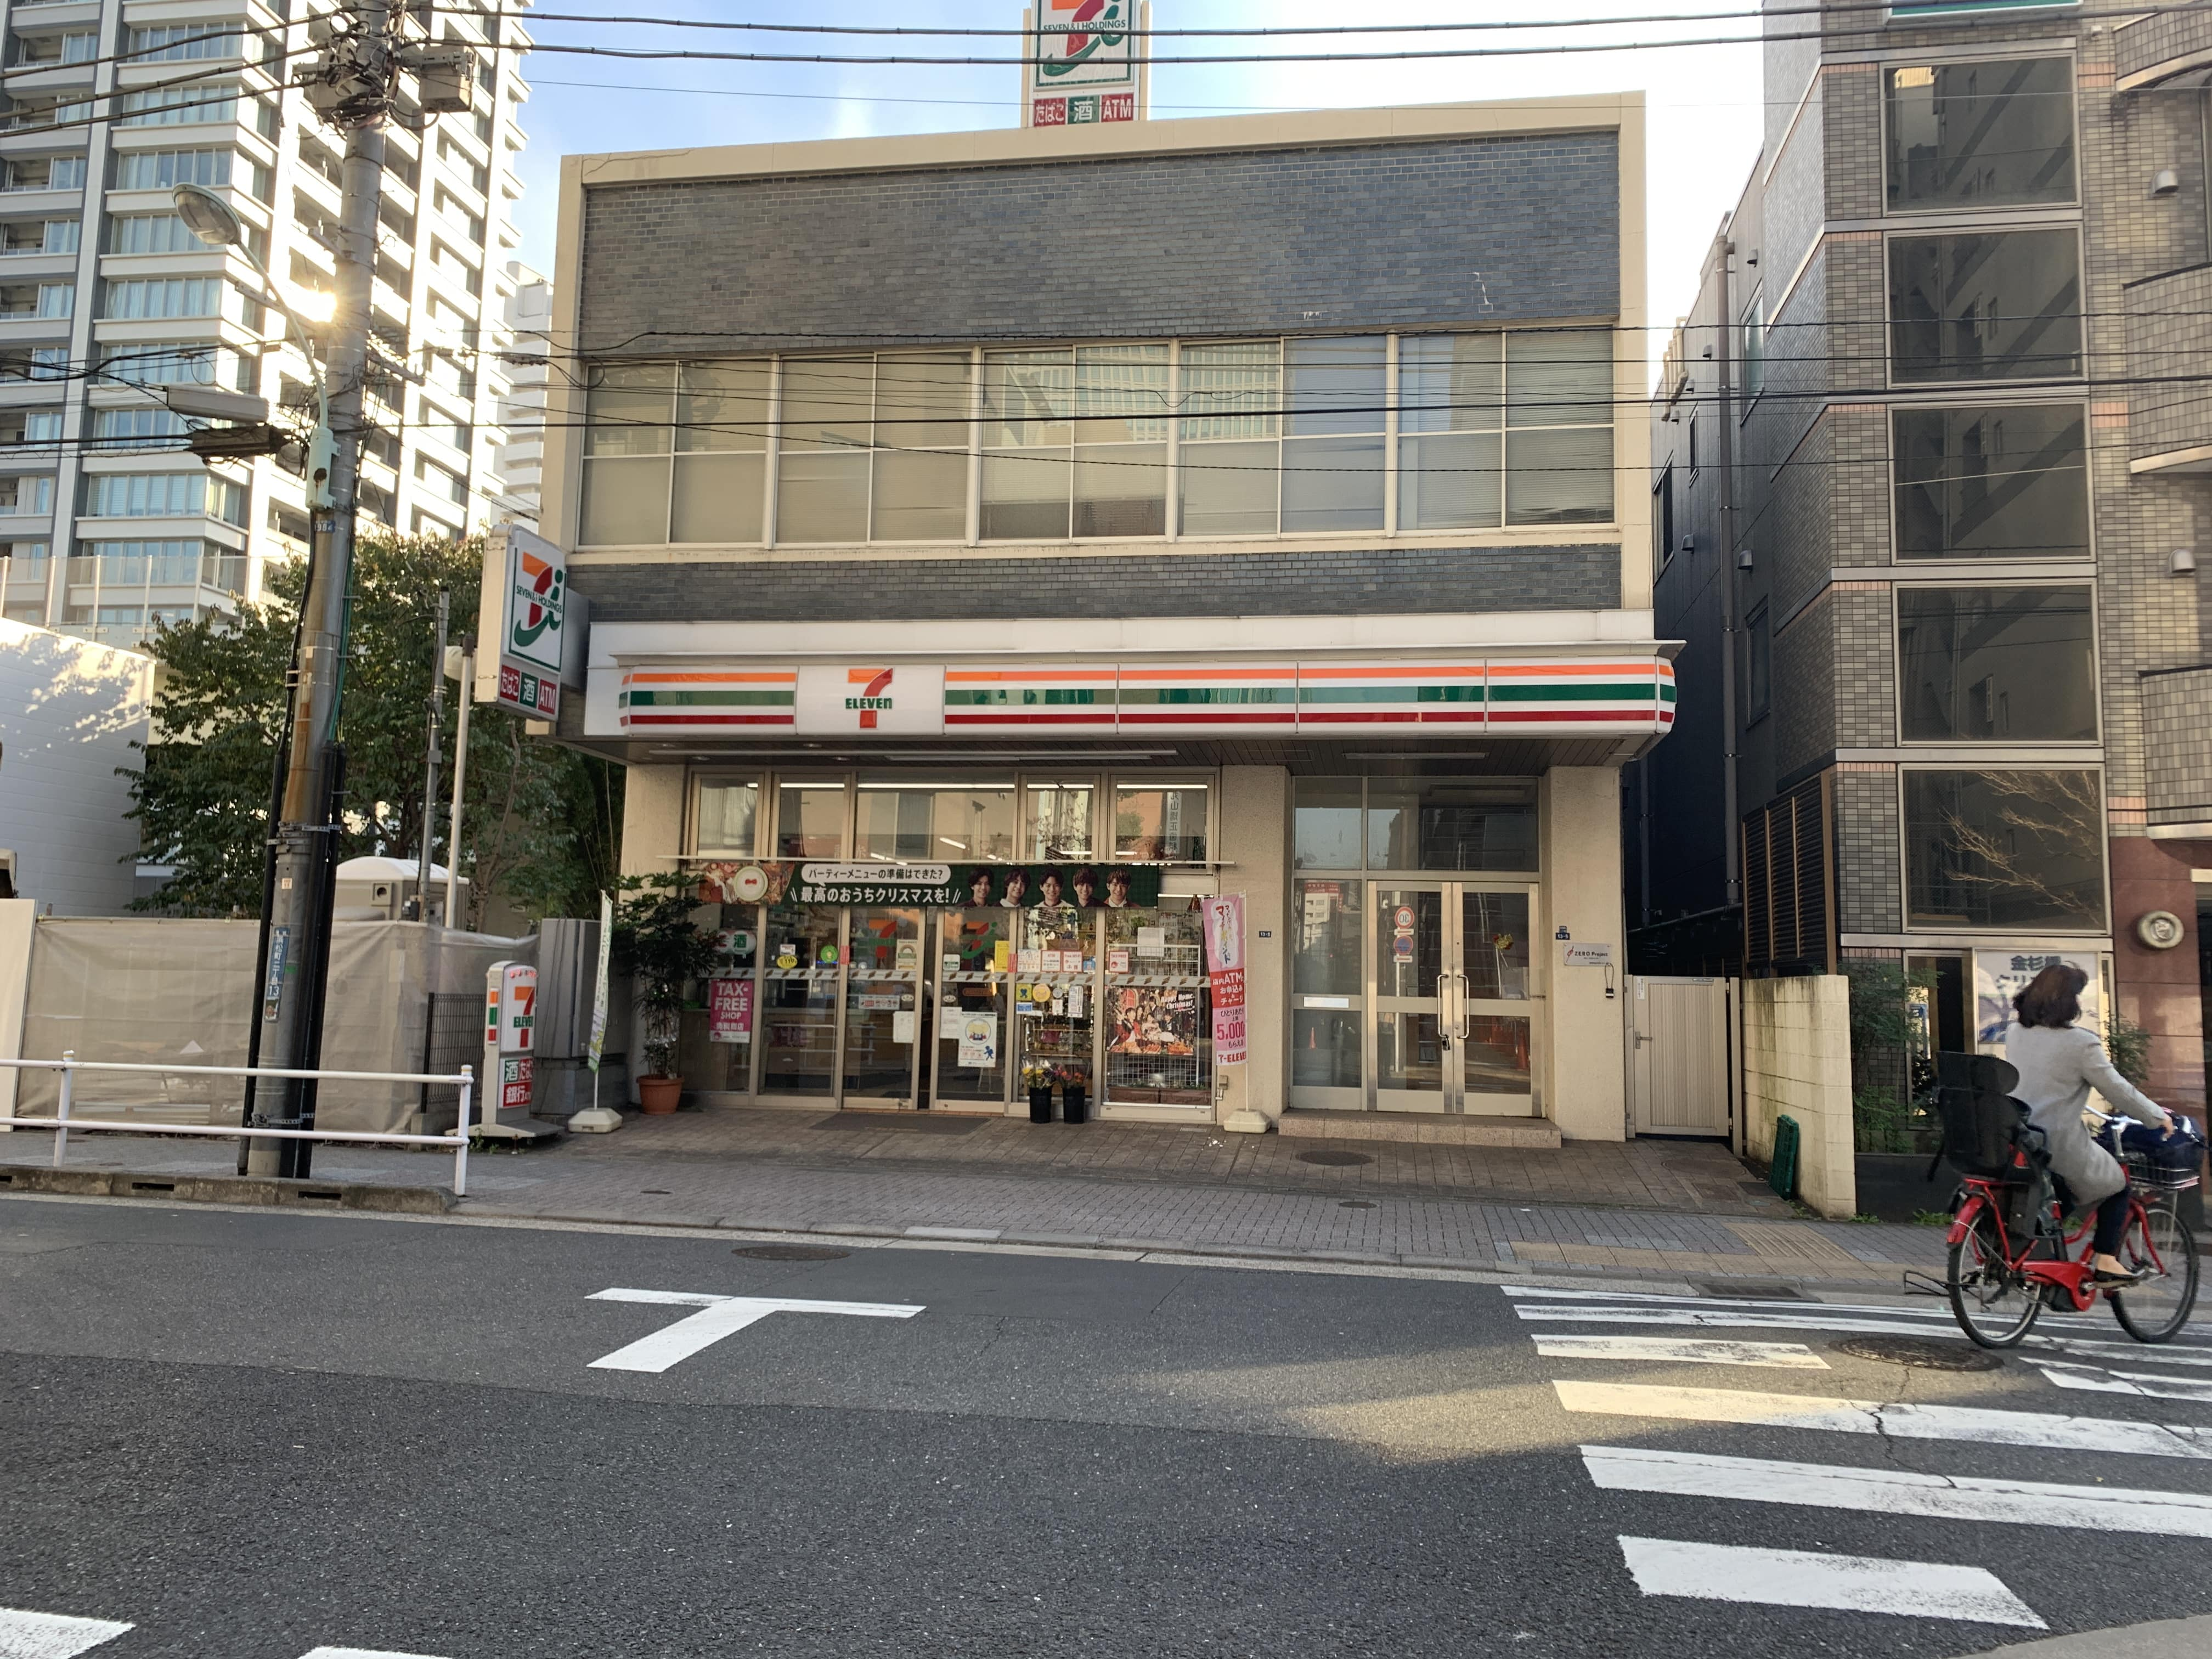 T Care Clinic from Daimon Station